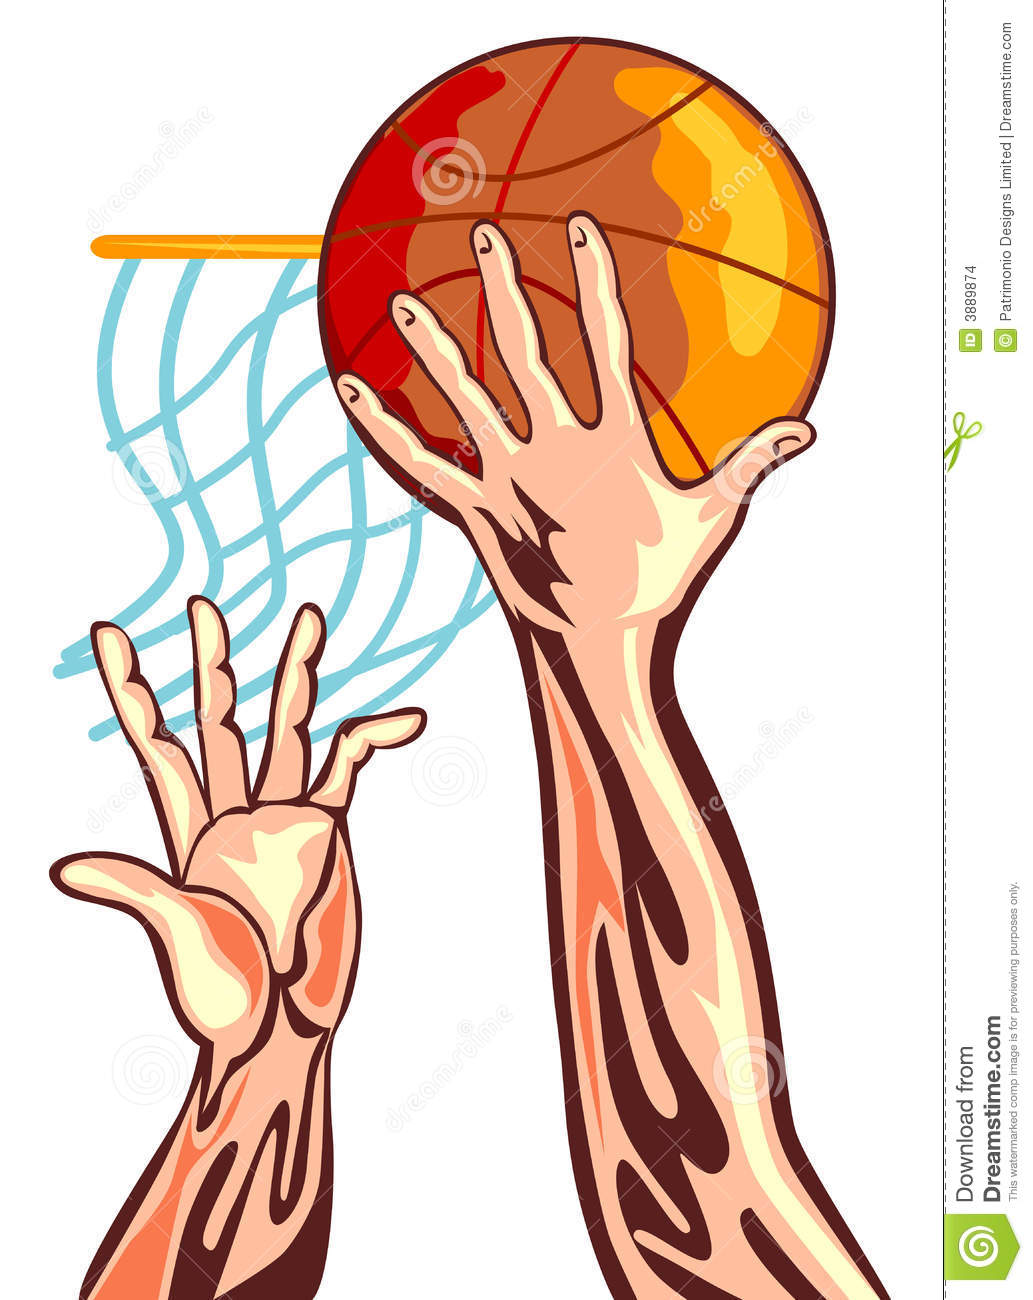 Basketball Hand With Ball Stock Images - Image: 3889874